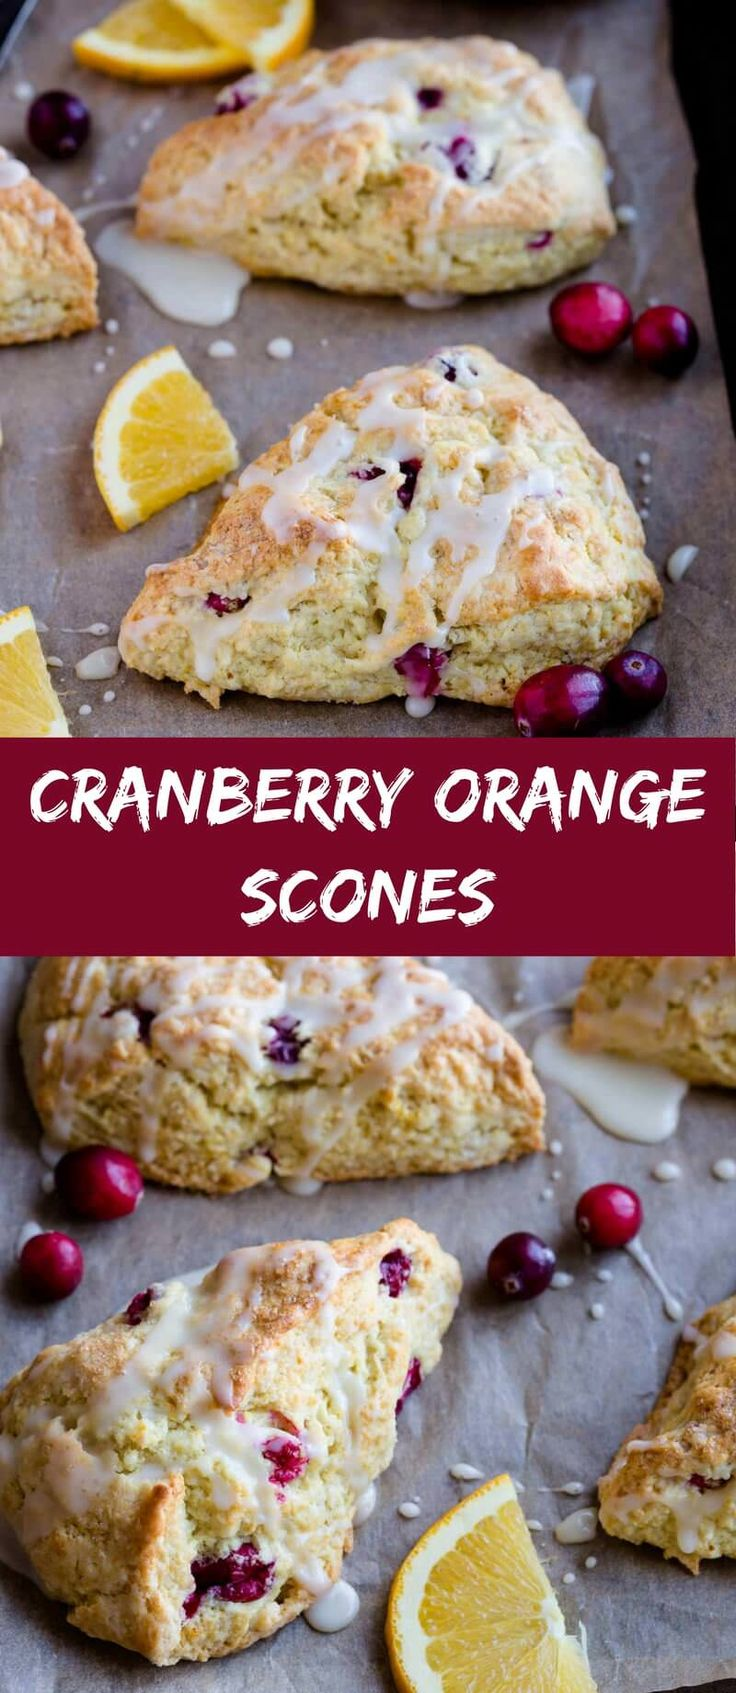 These Cranberry Orange Scones are the best fall scones you'll ever have! This recipe yields tender, flaky, and ultra-moist scones.